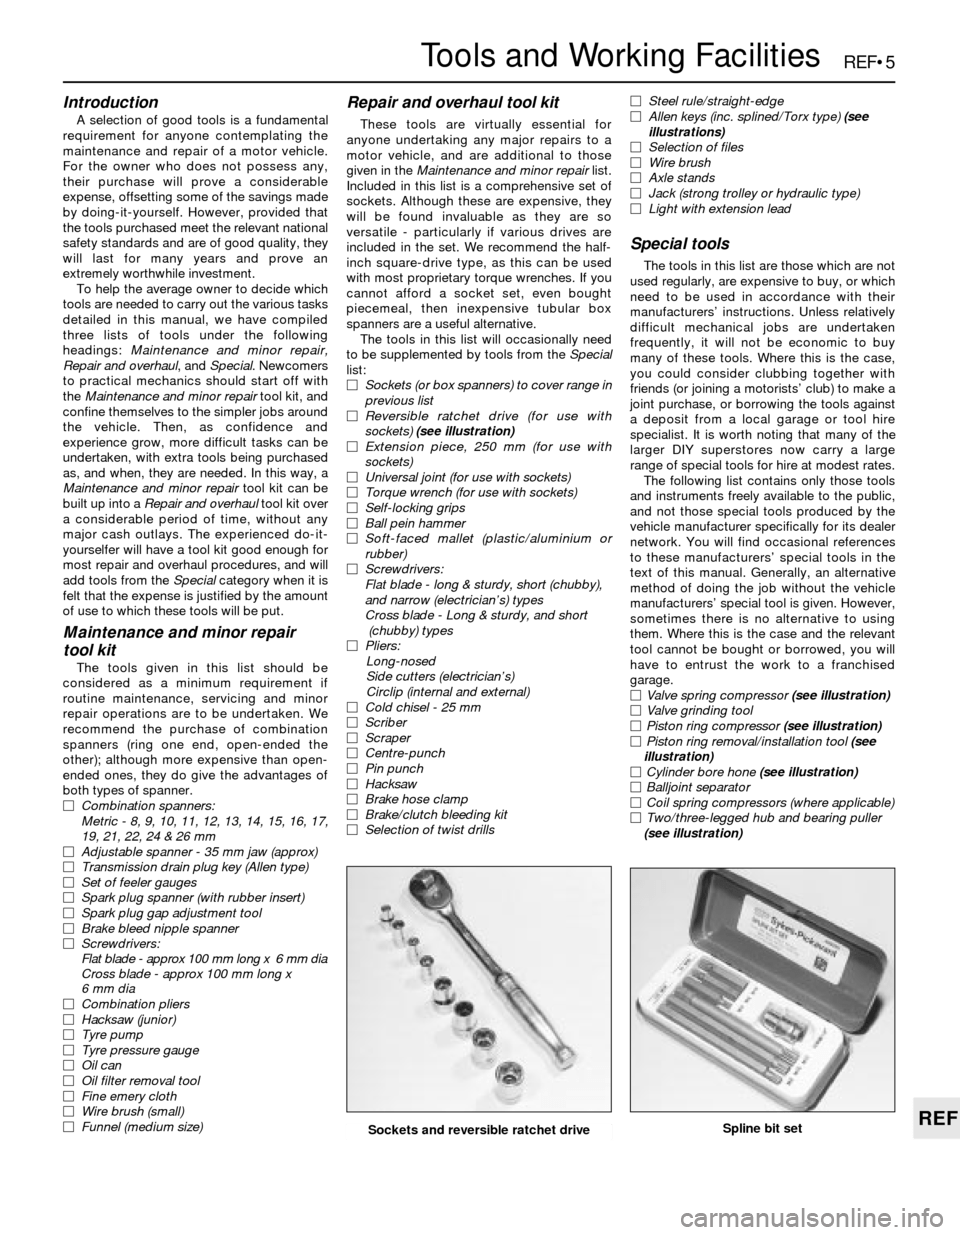 BMW 3 SERIES 1988 E30 Workshop Manual (228 Pages), Page